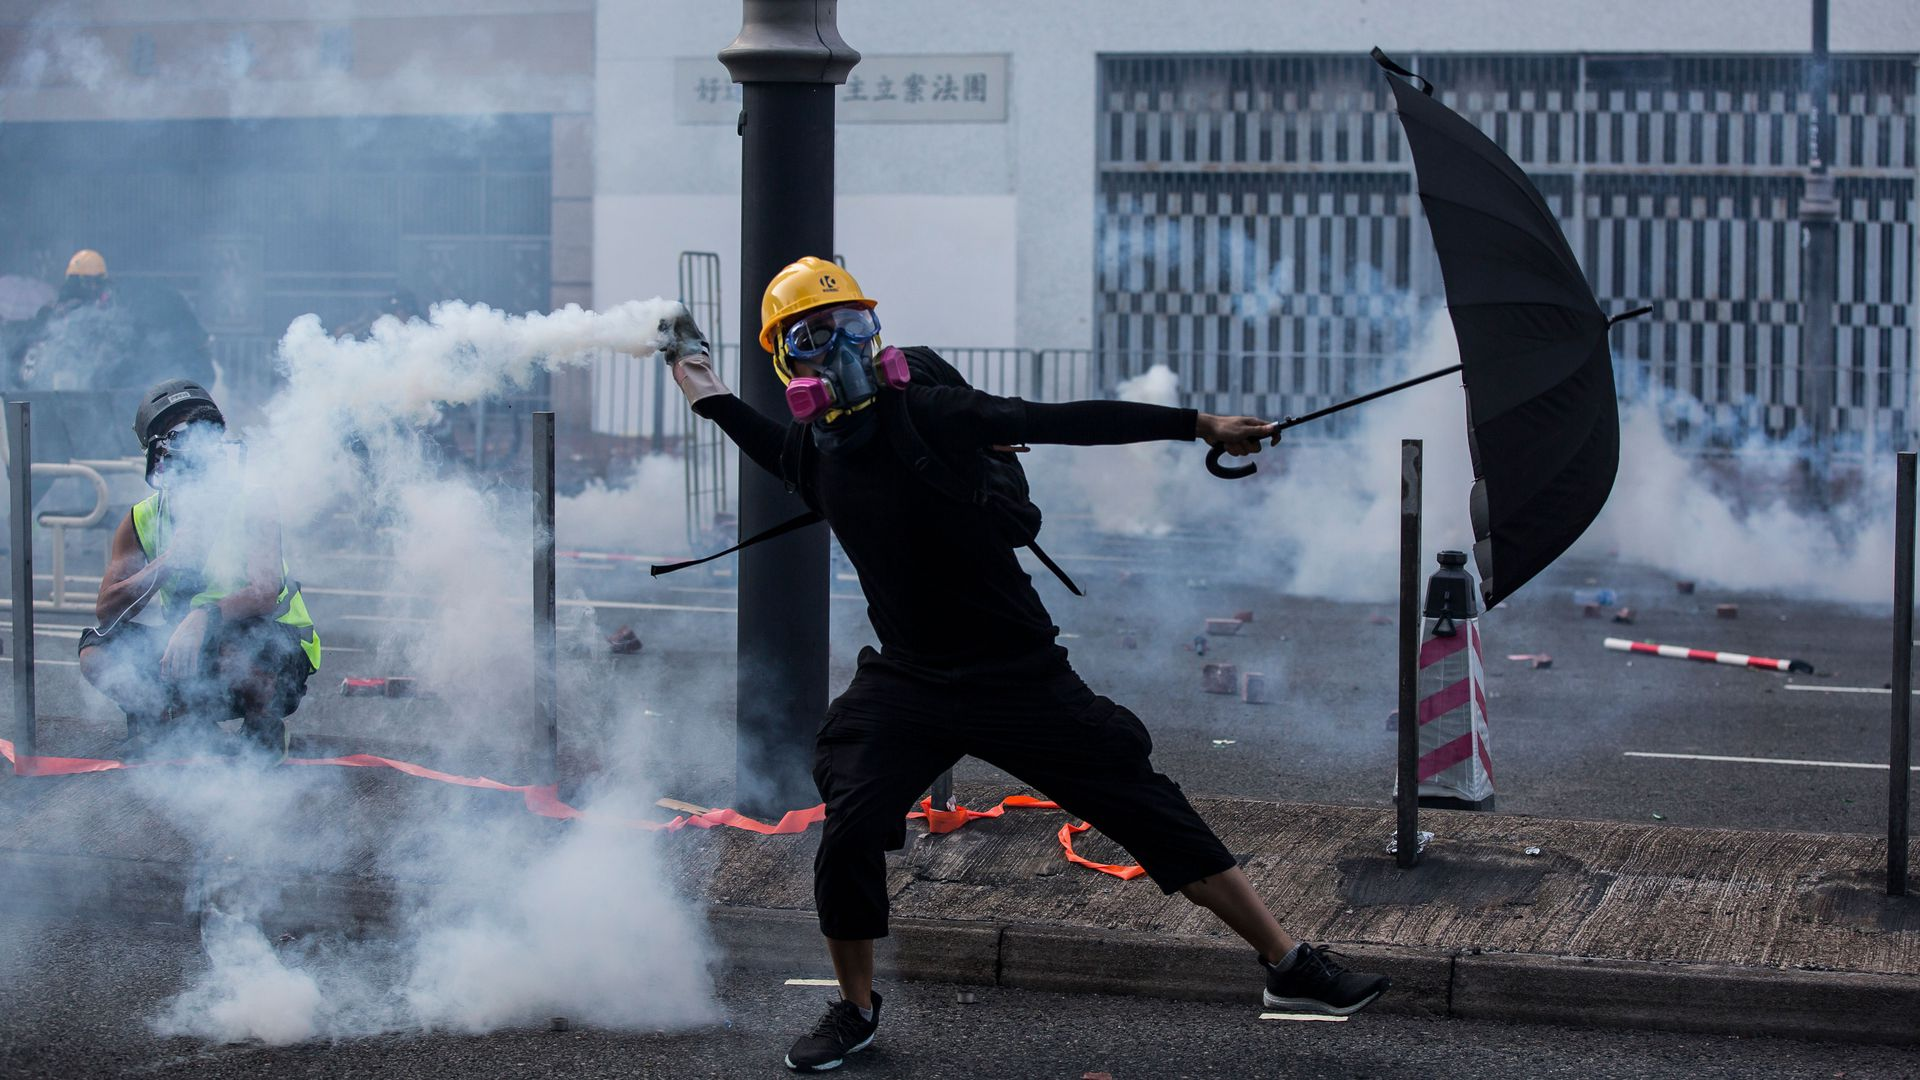 Photo of a protester with an umbrella on Hong Kong street bathed in tear gas